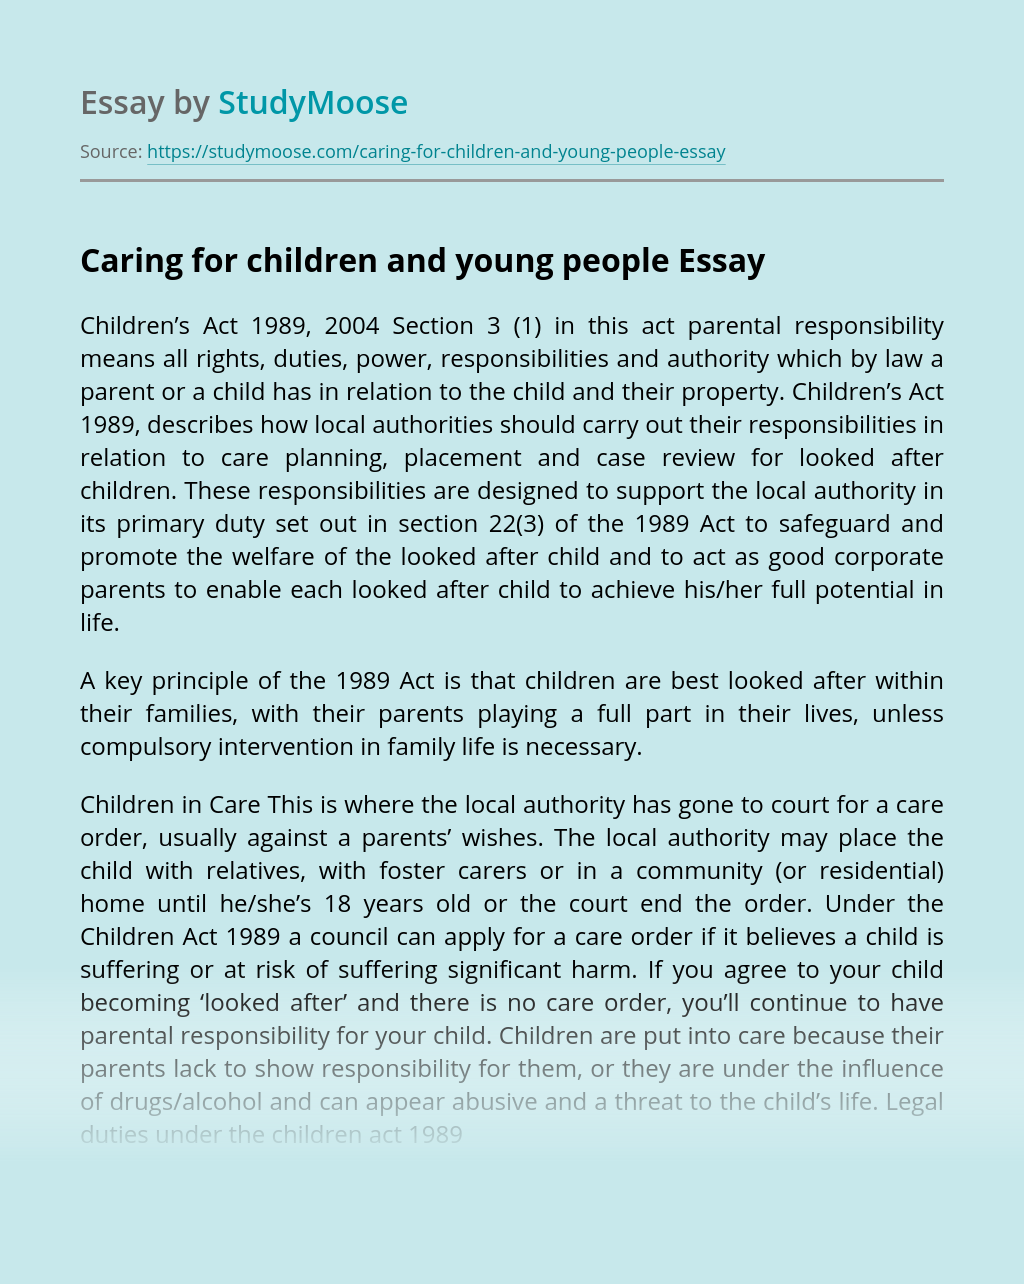 Caring for children and young people